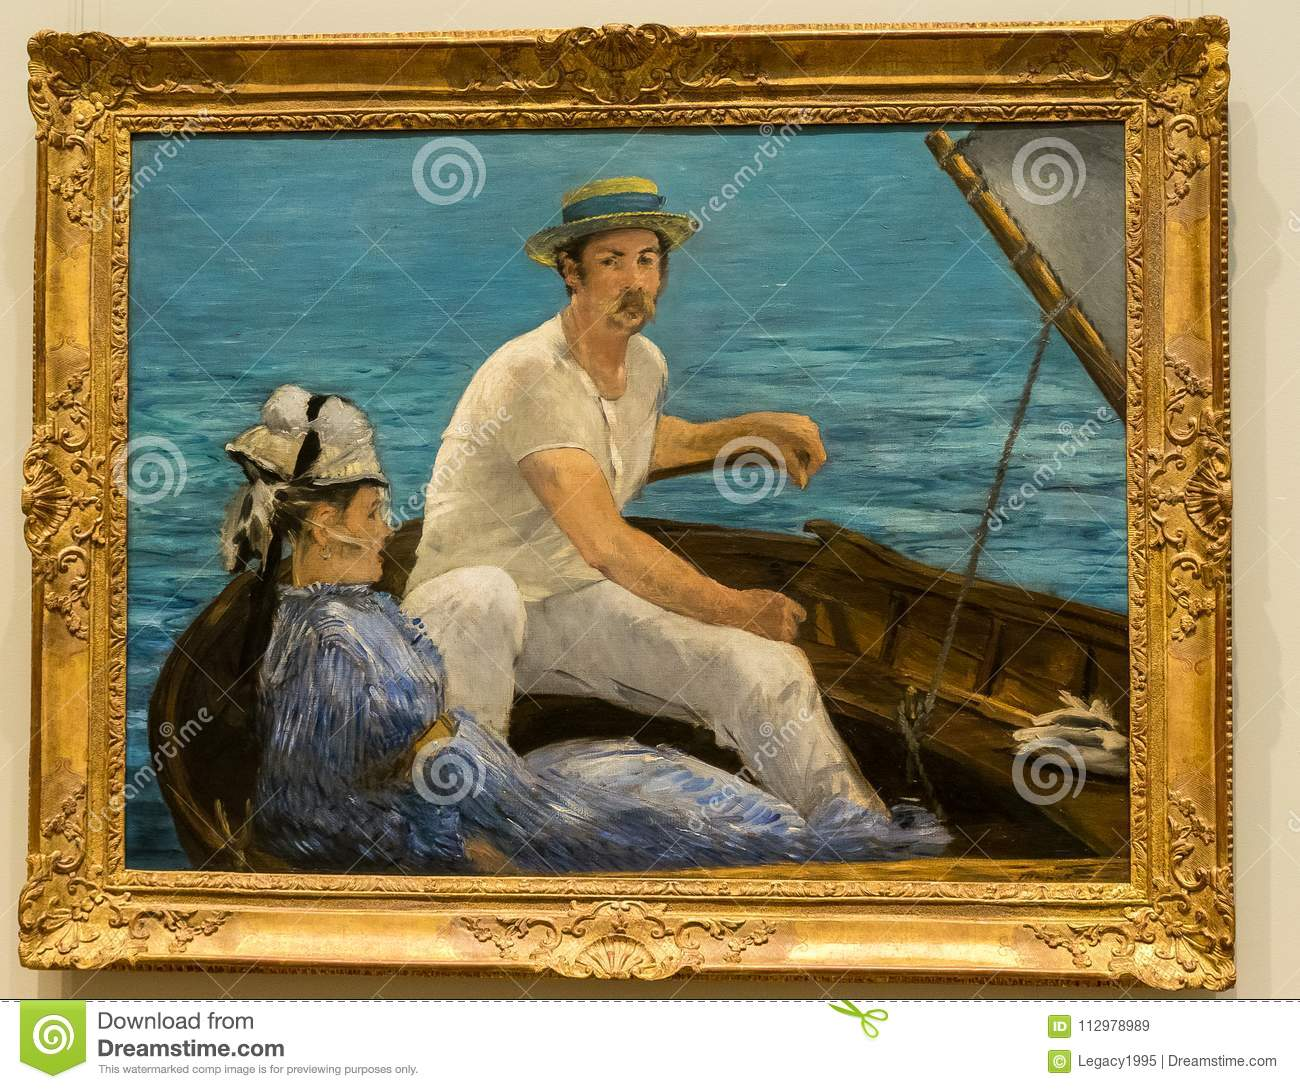 New York City The Met - Edouard Manet - Boating